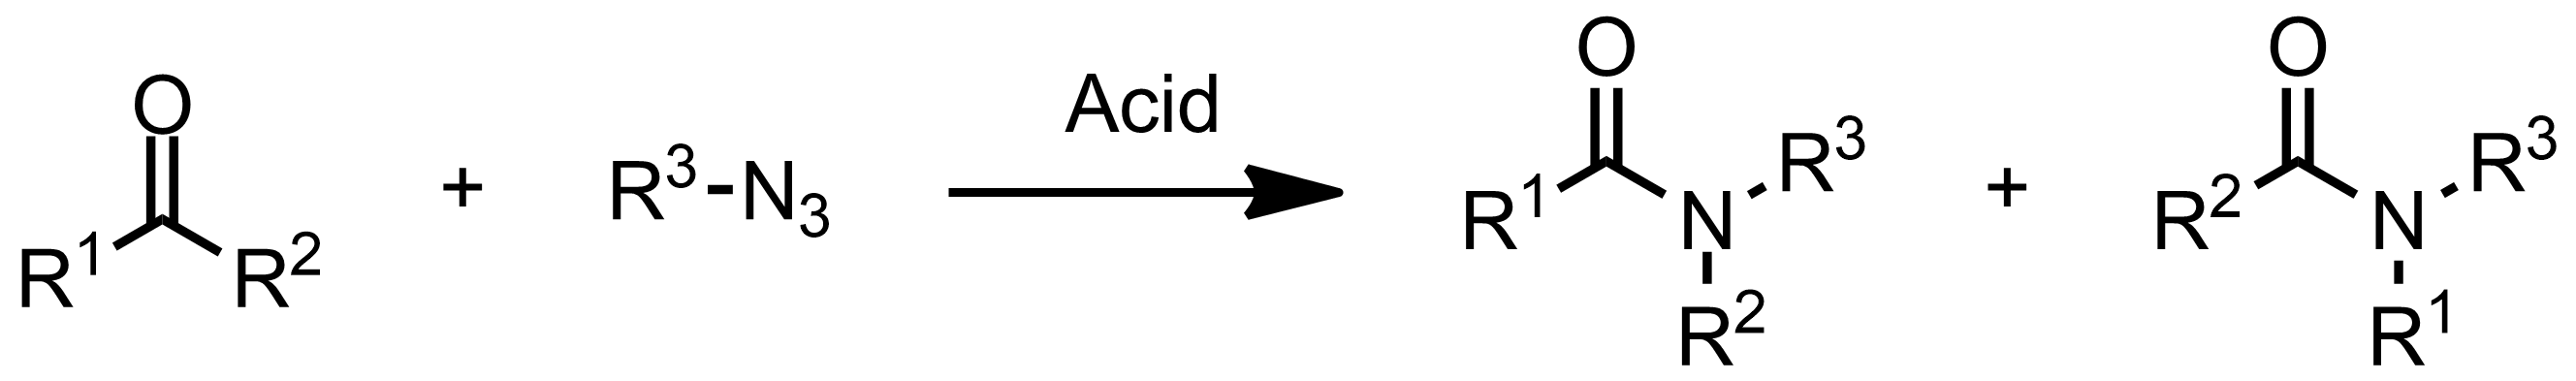 Schematic representation of the Schmidt Reaction.